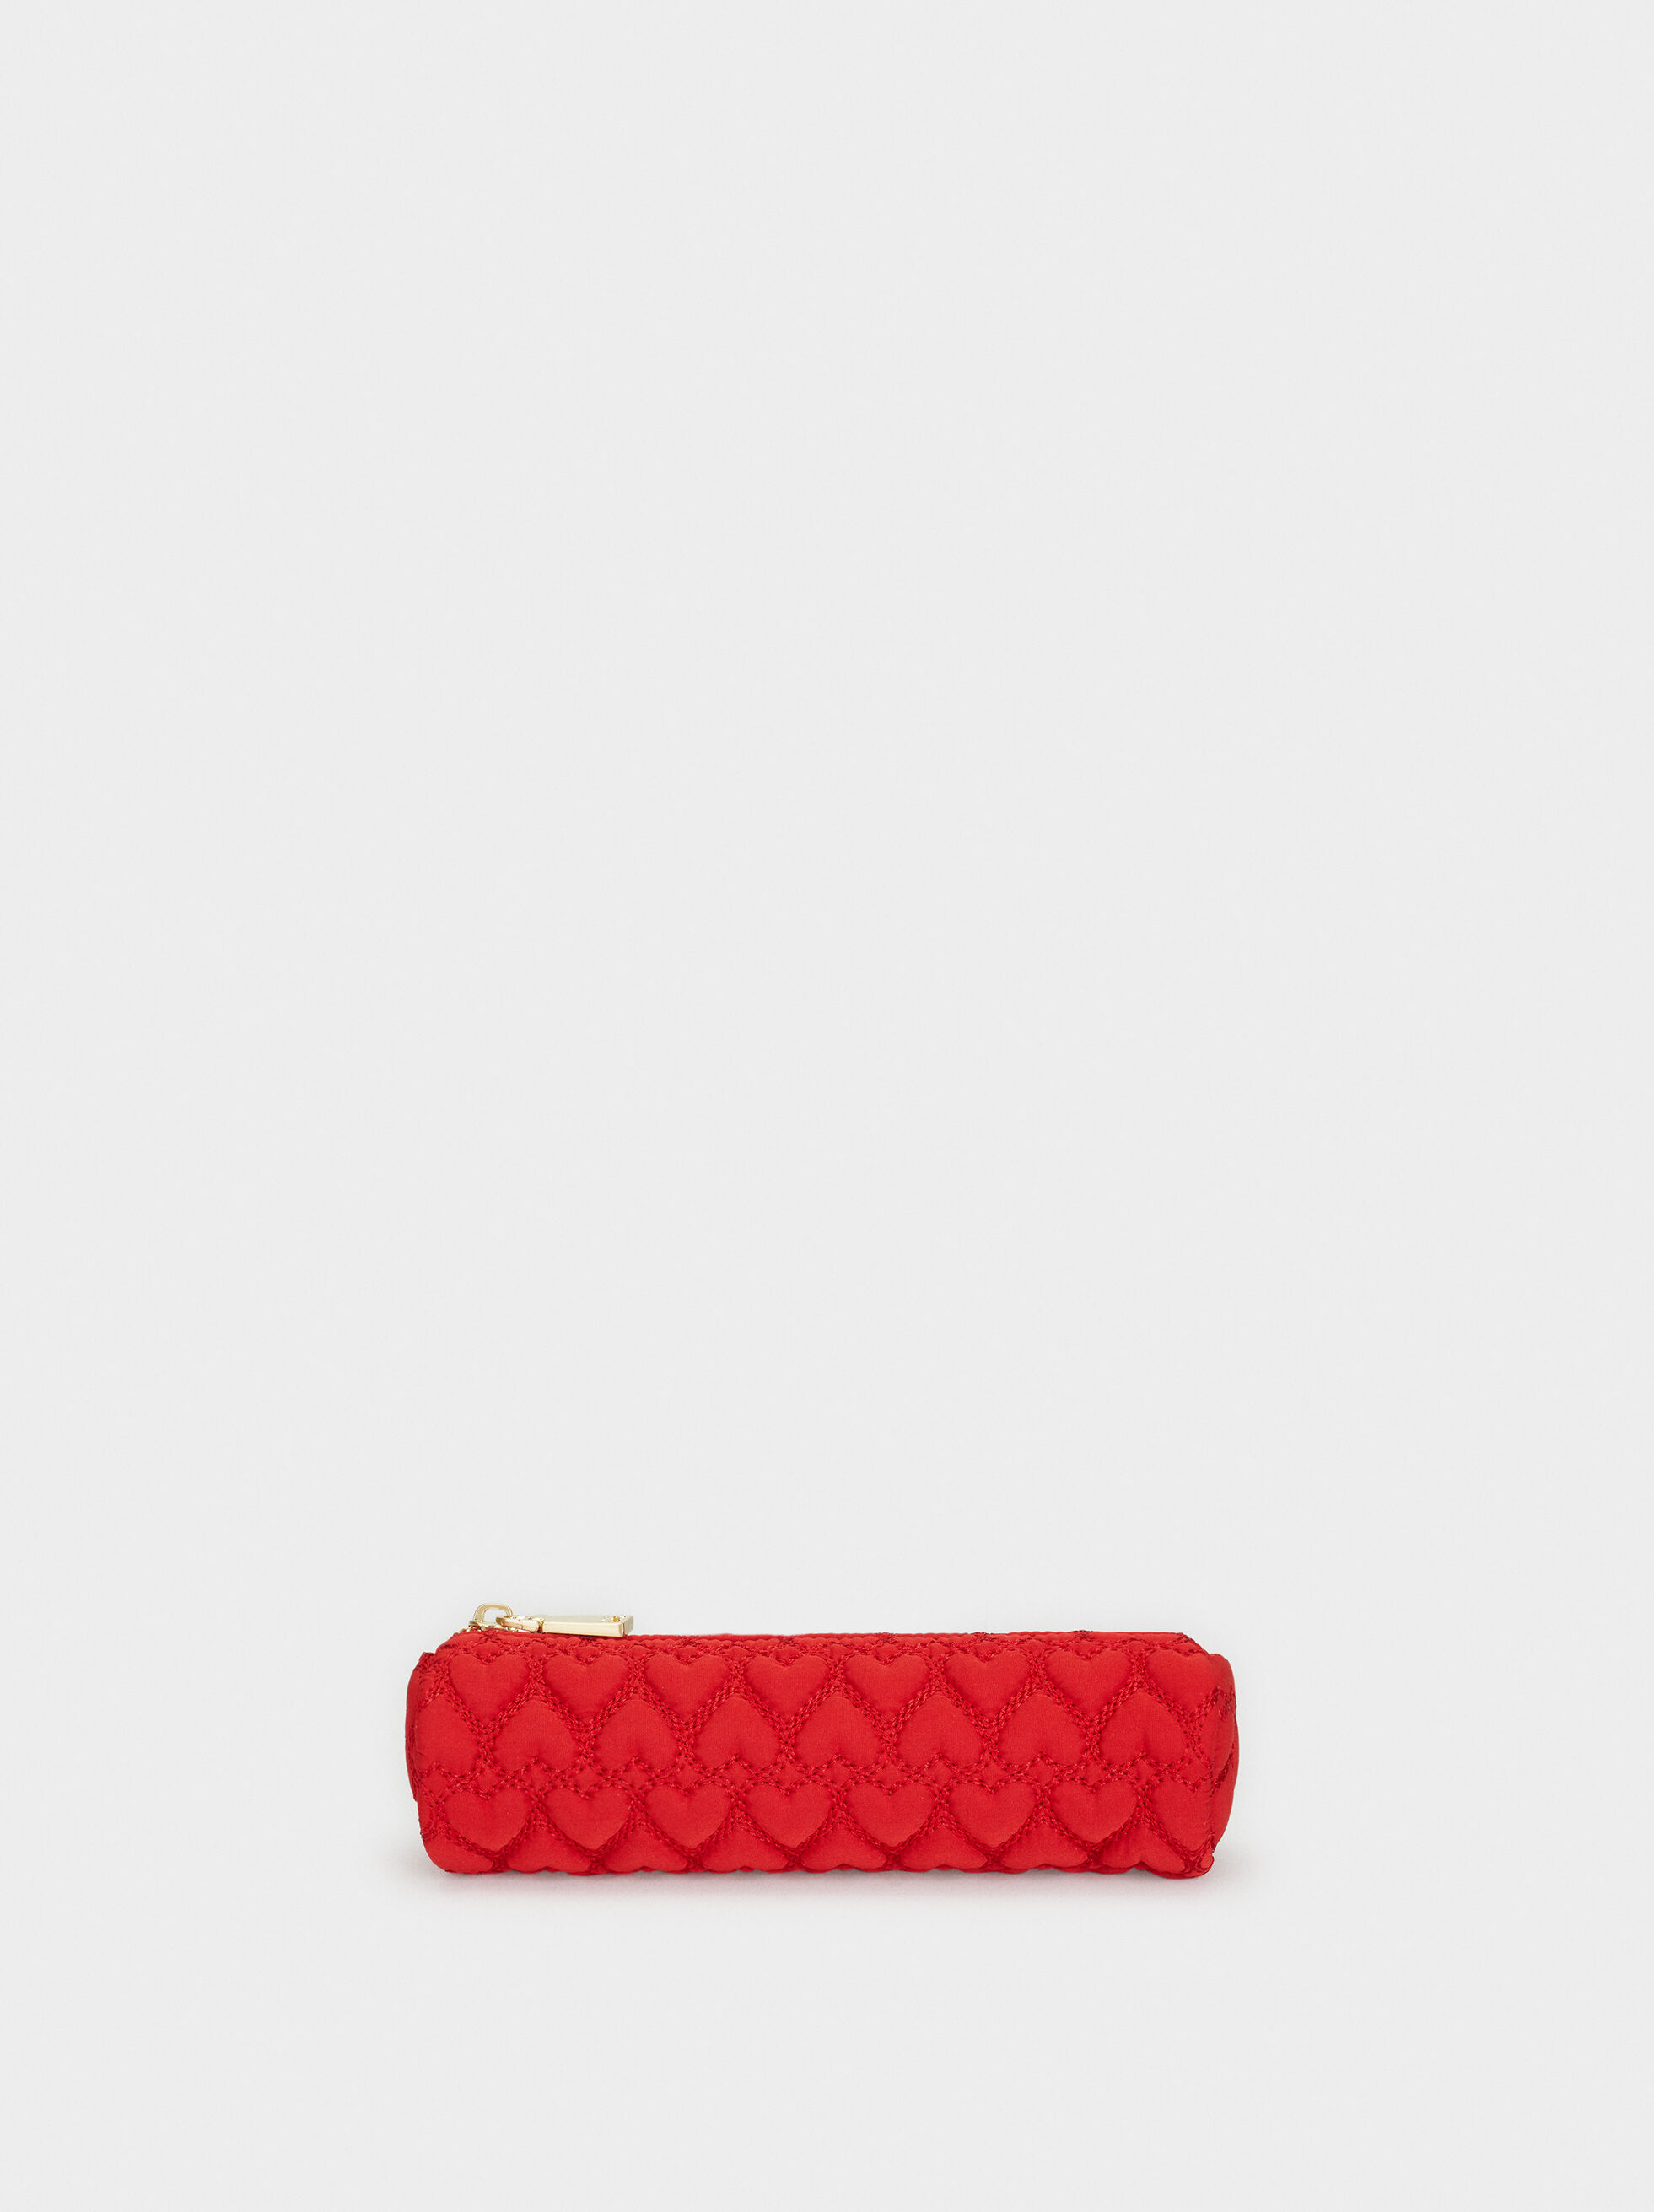 We Are Love Pencil Case With Hearts, Red, hi-res